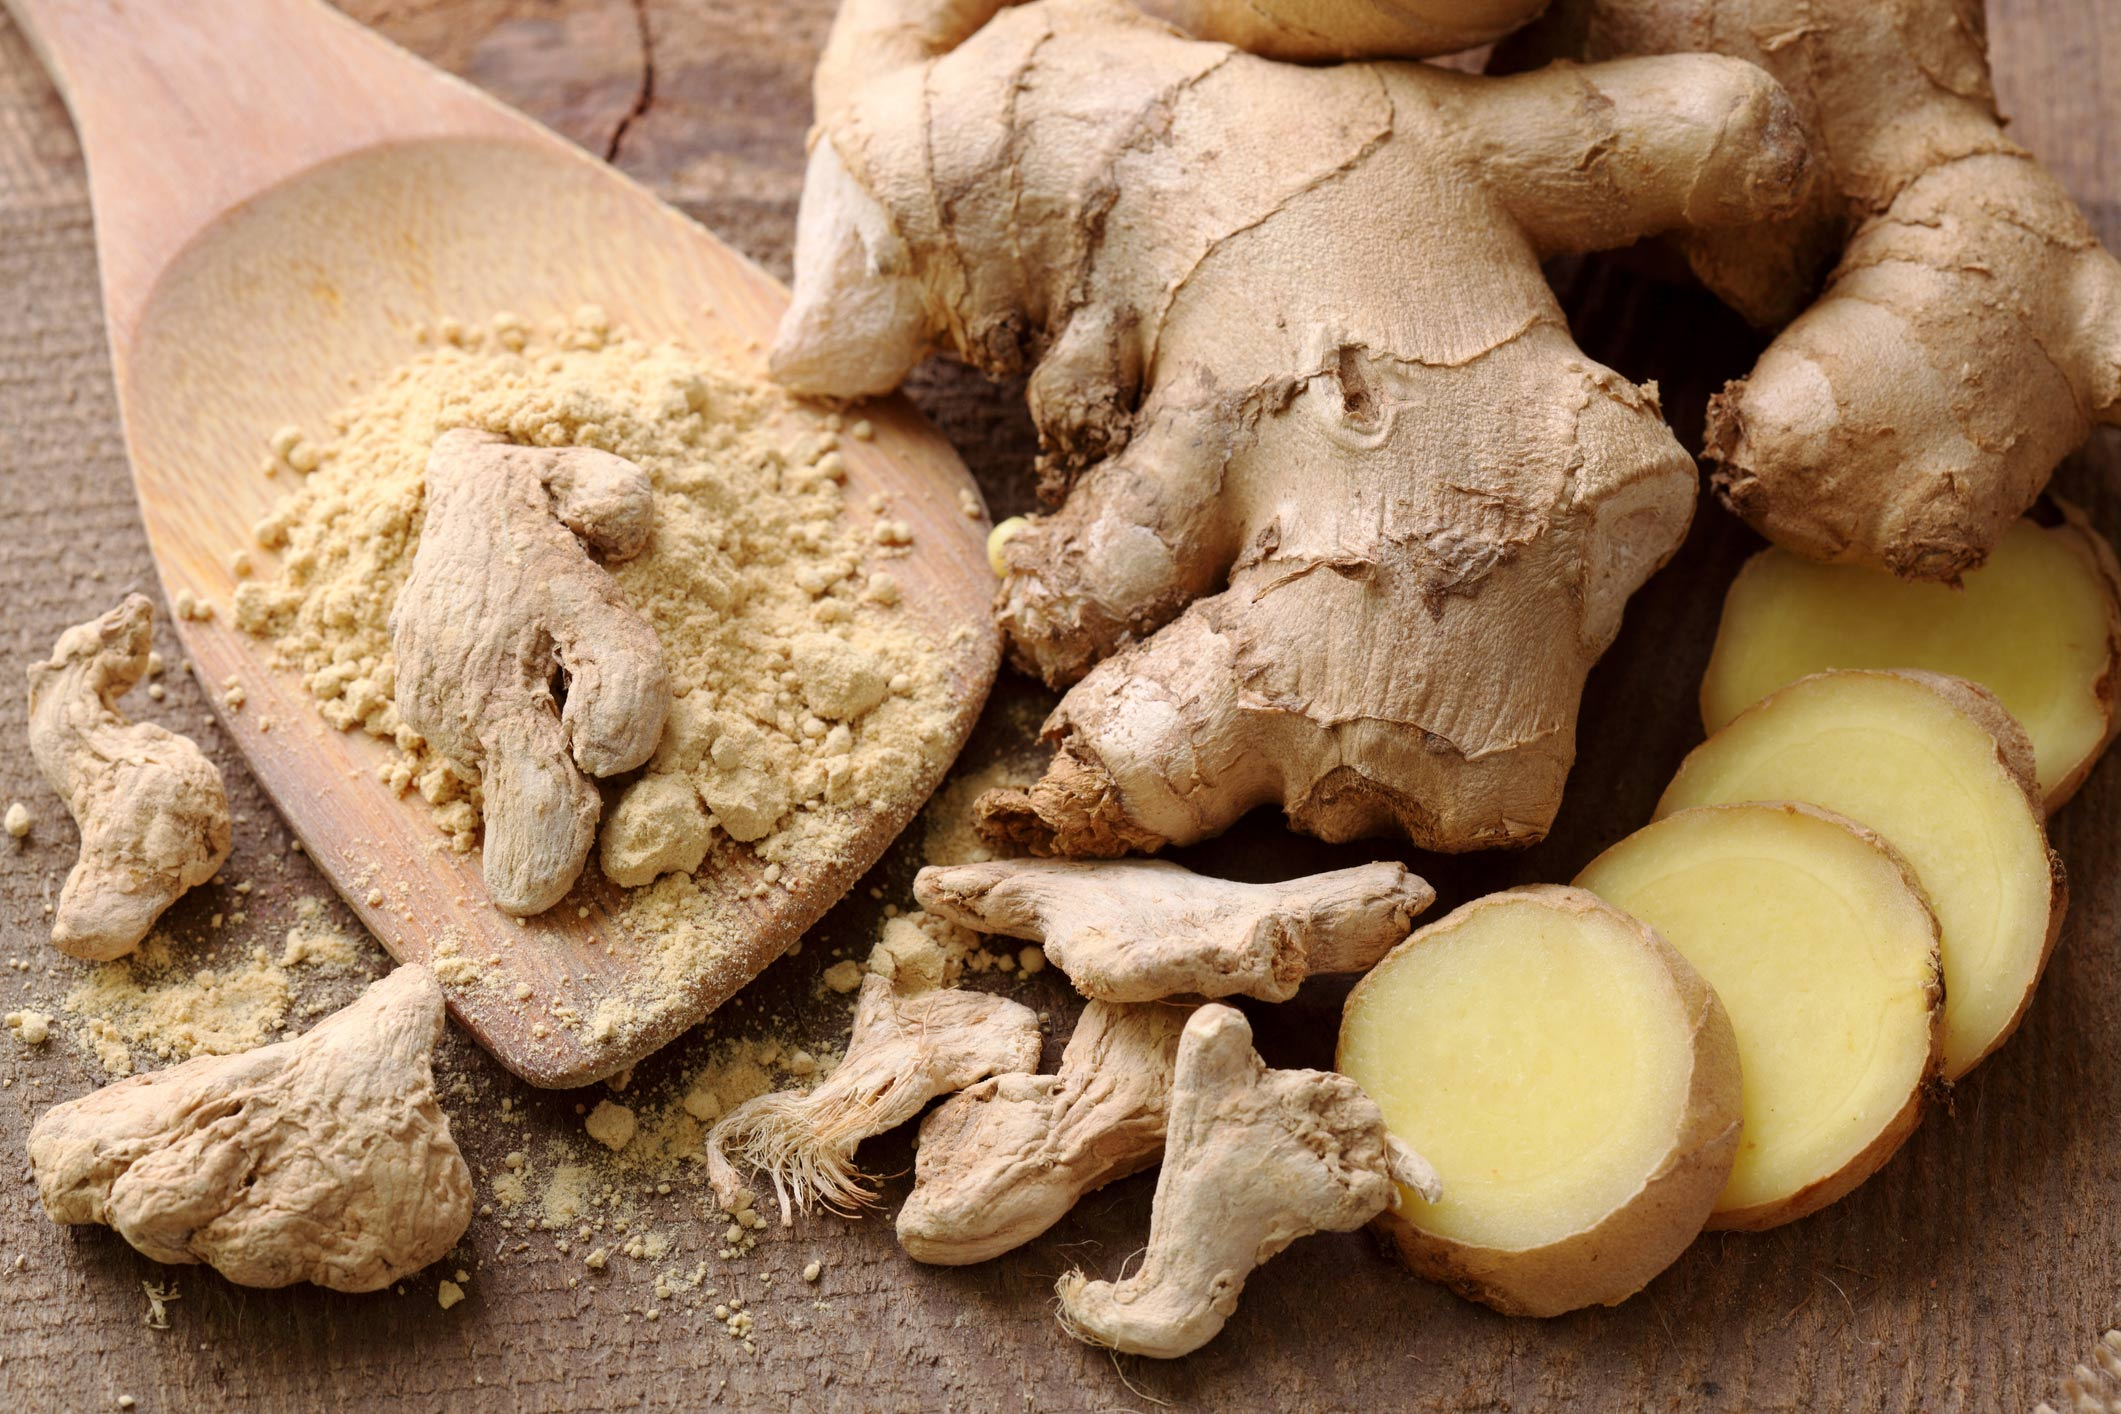 Top detoxifying foods: Ginger